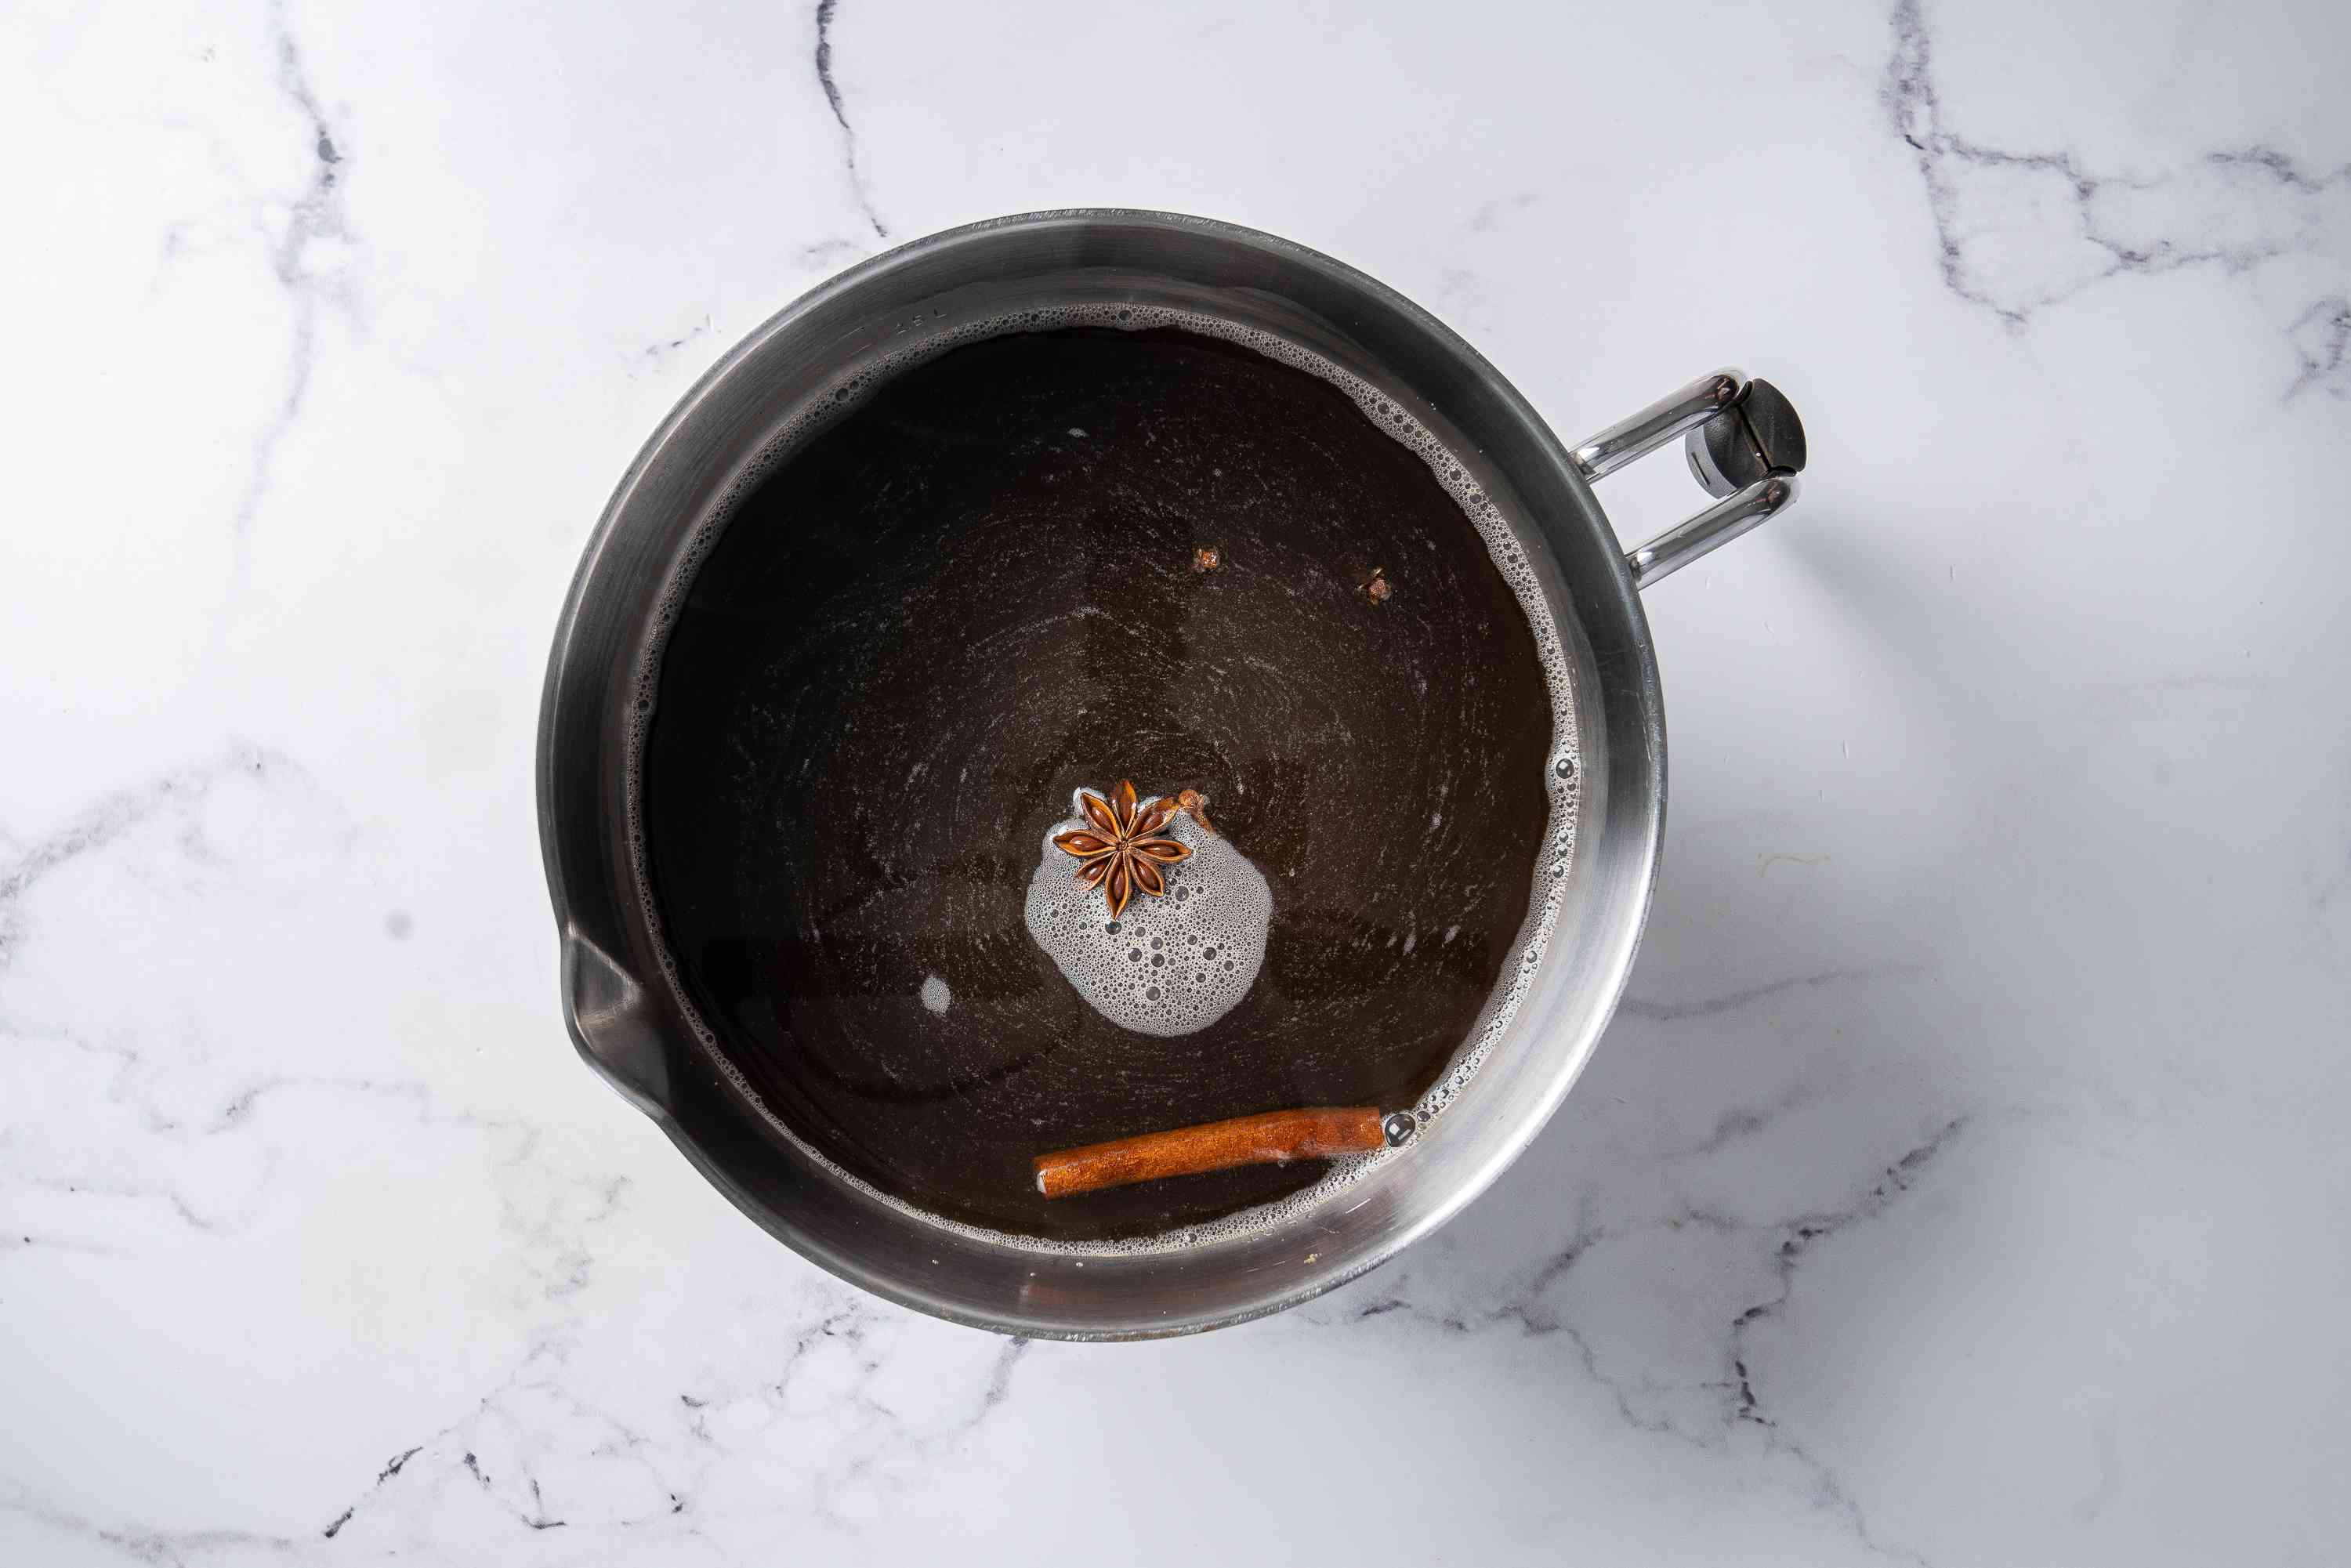 Spices and water in a saucepan